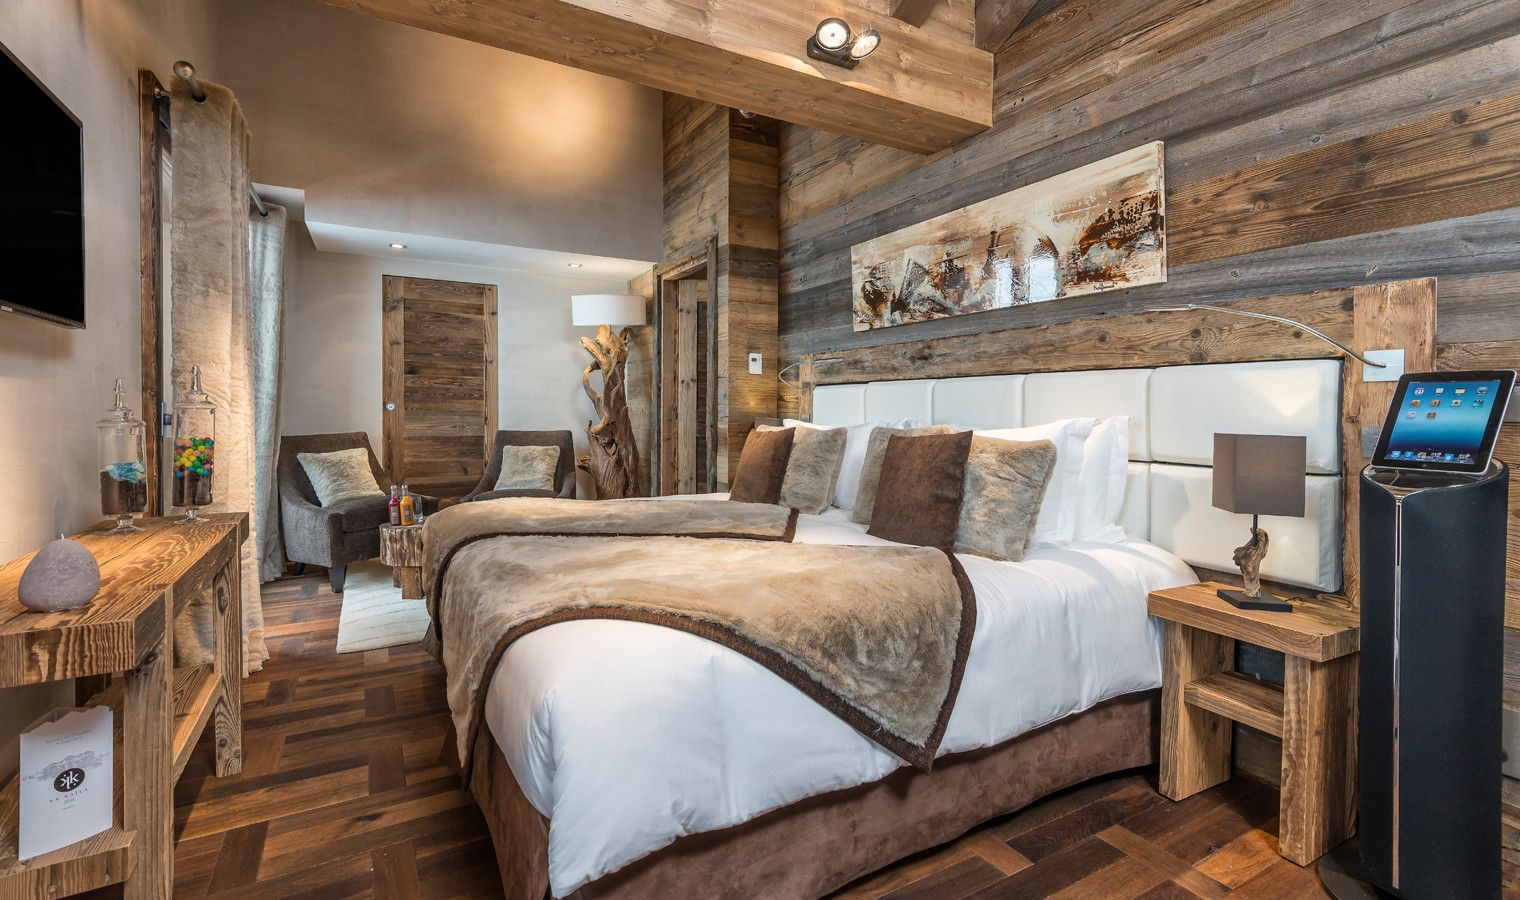 5 star master bedrooms  Le Kaïla  starhotel in Meribel  Home  Pinterest  Alps Spa